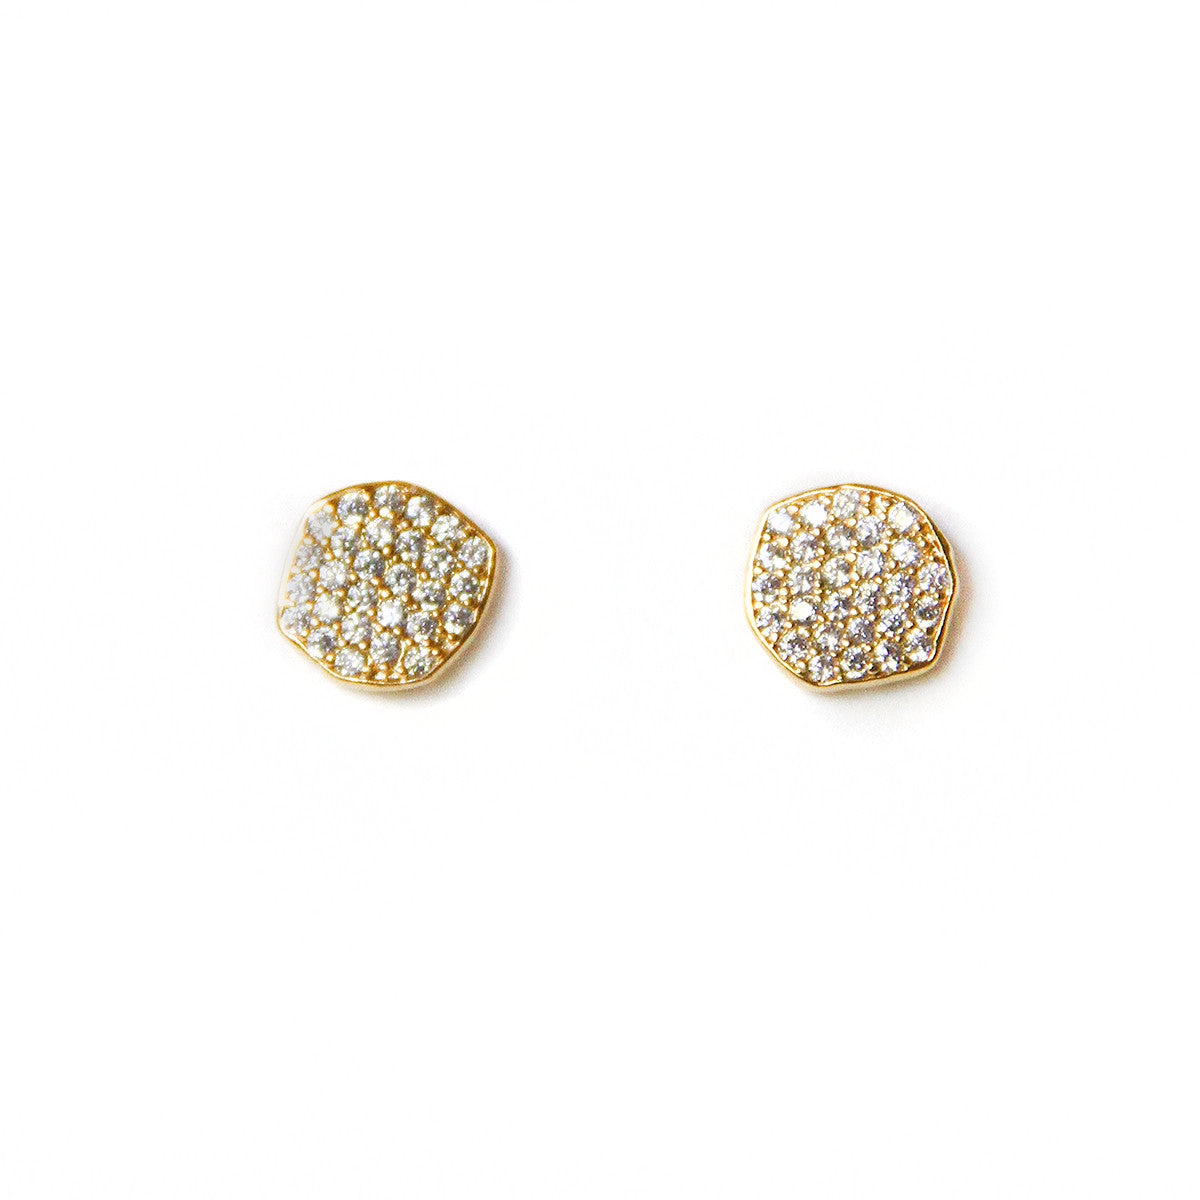 PAVE ORGANIC DISC EARRINGS